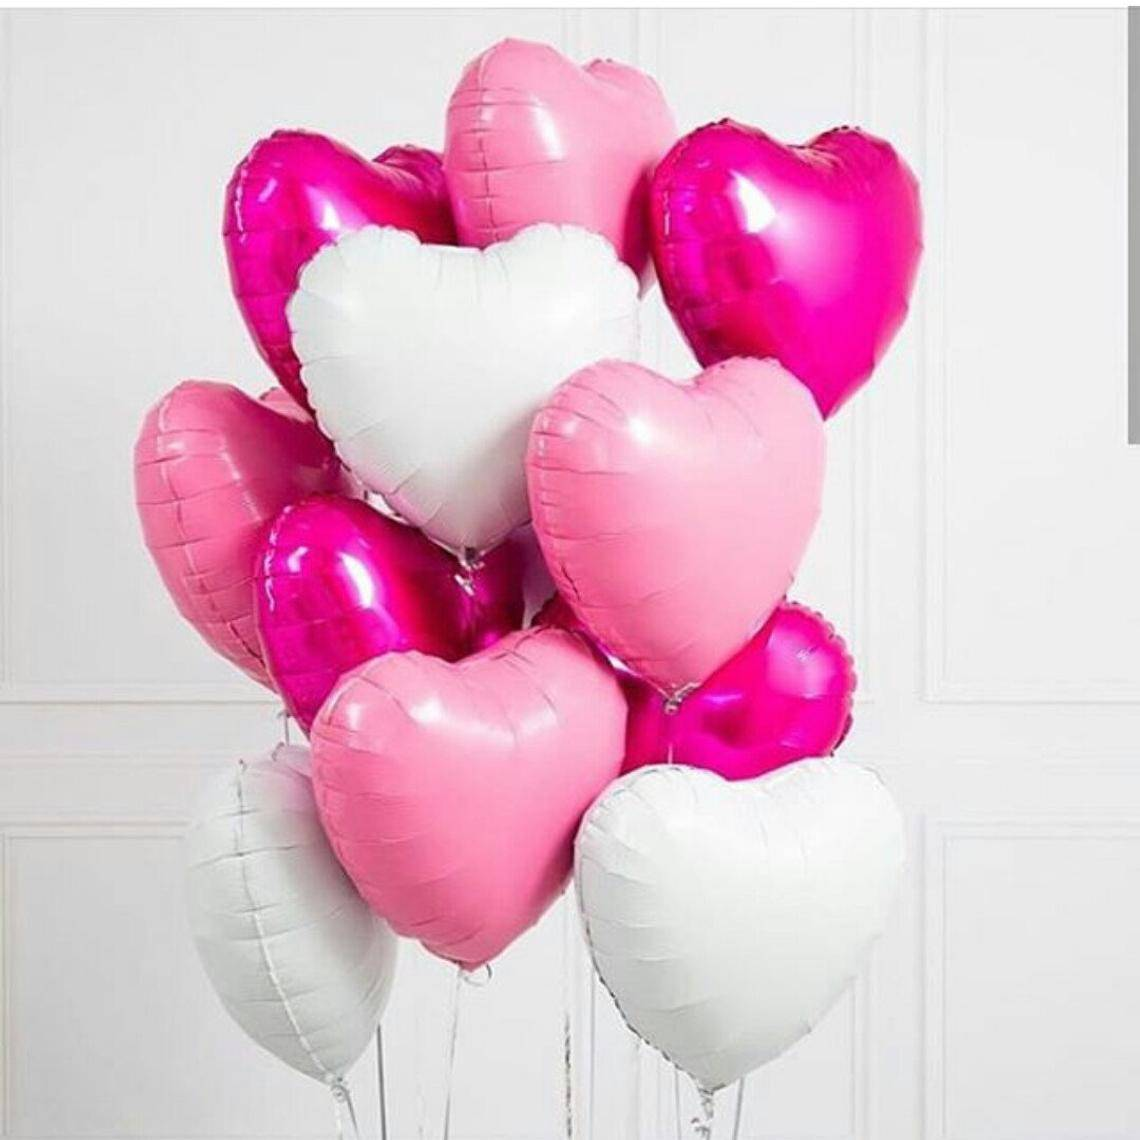 Valentine's day decorations | Valentine's day Heart Balloon Bouquet White & Pink Balloons | Engagement Party | Wedding Decoration